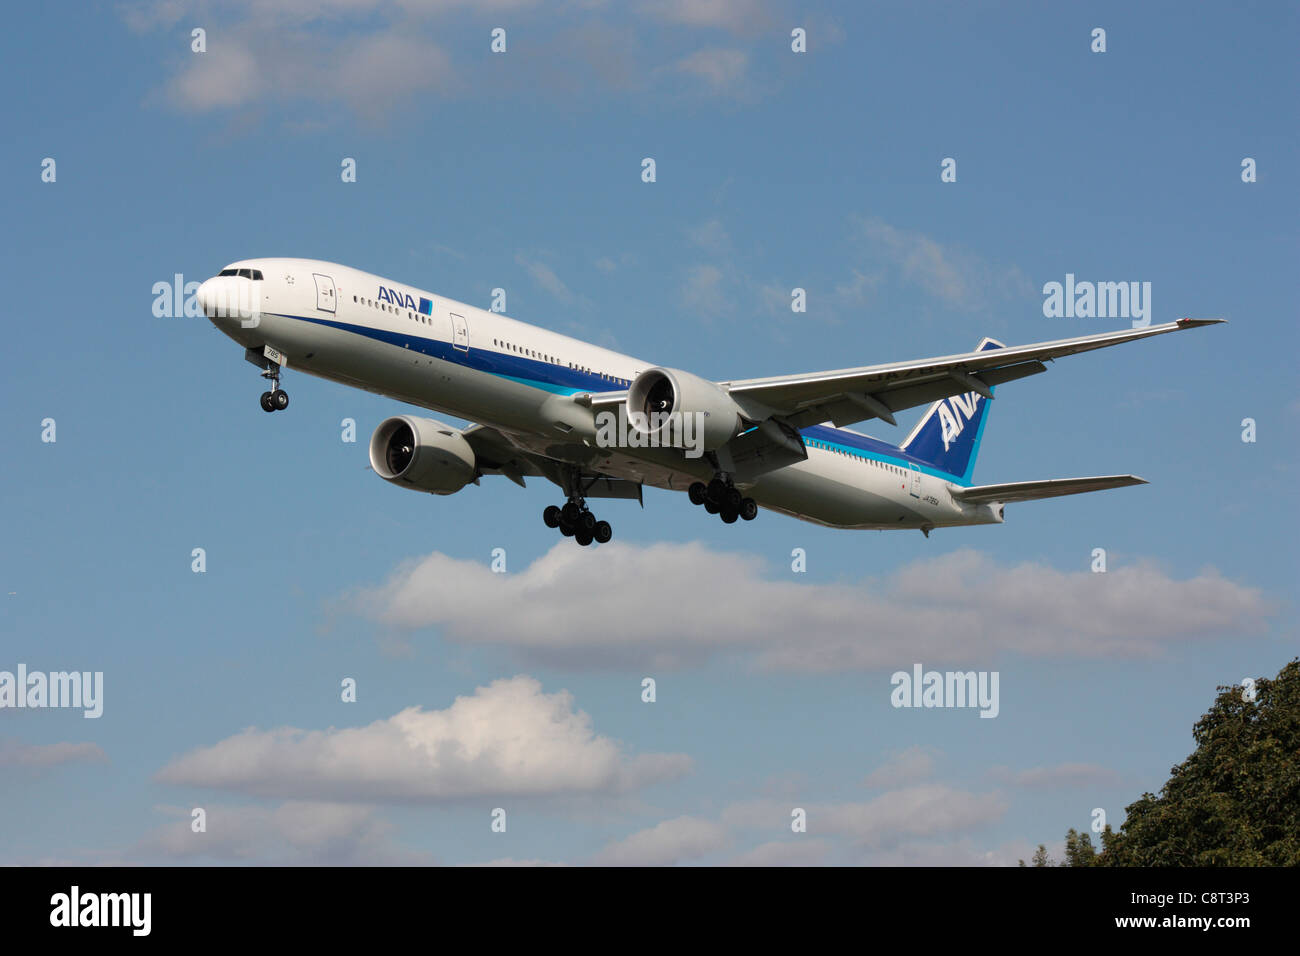 ANA Boeing 777-300ER long haul widebody passenger jet plane on approach to London Heathrow - Stock Image